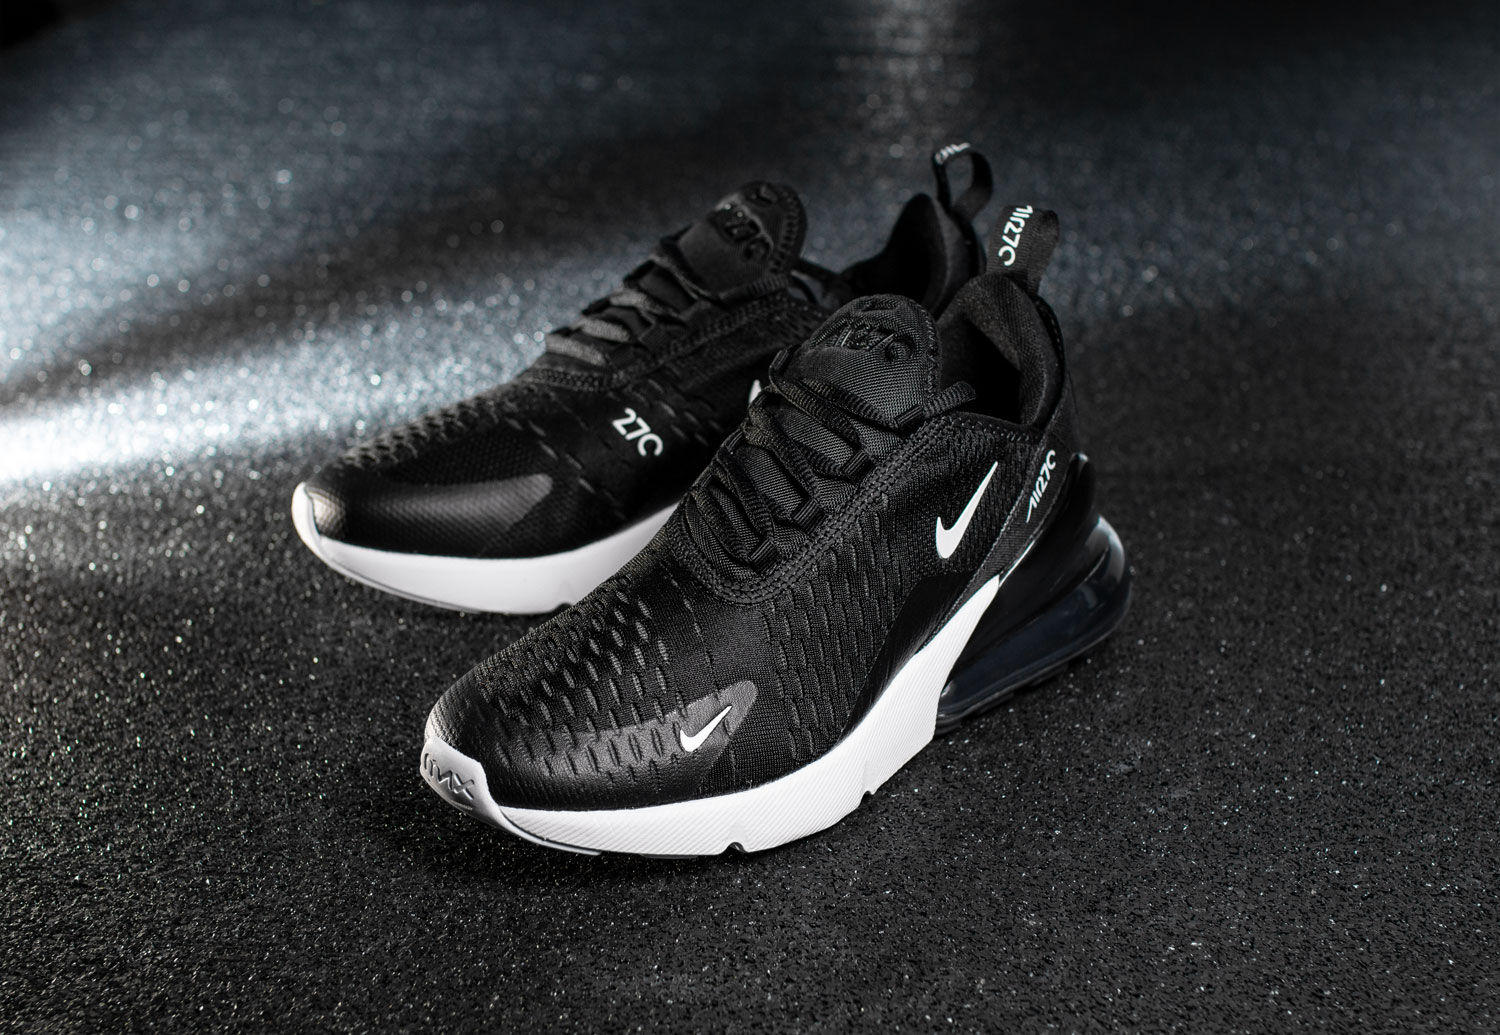 Air Max 270 Baskets low Hommes chez Stylefile